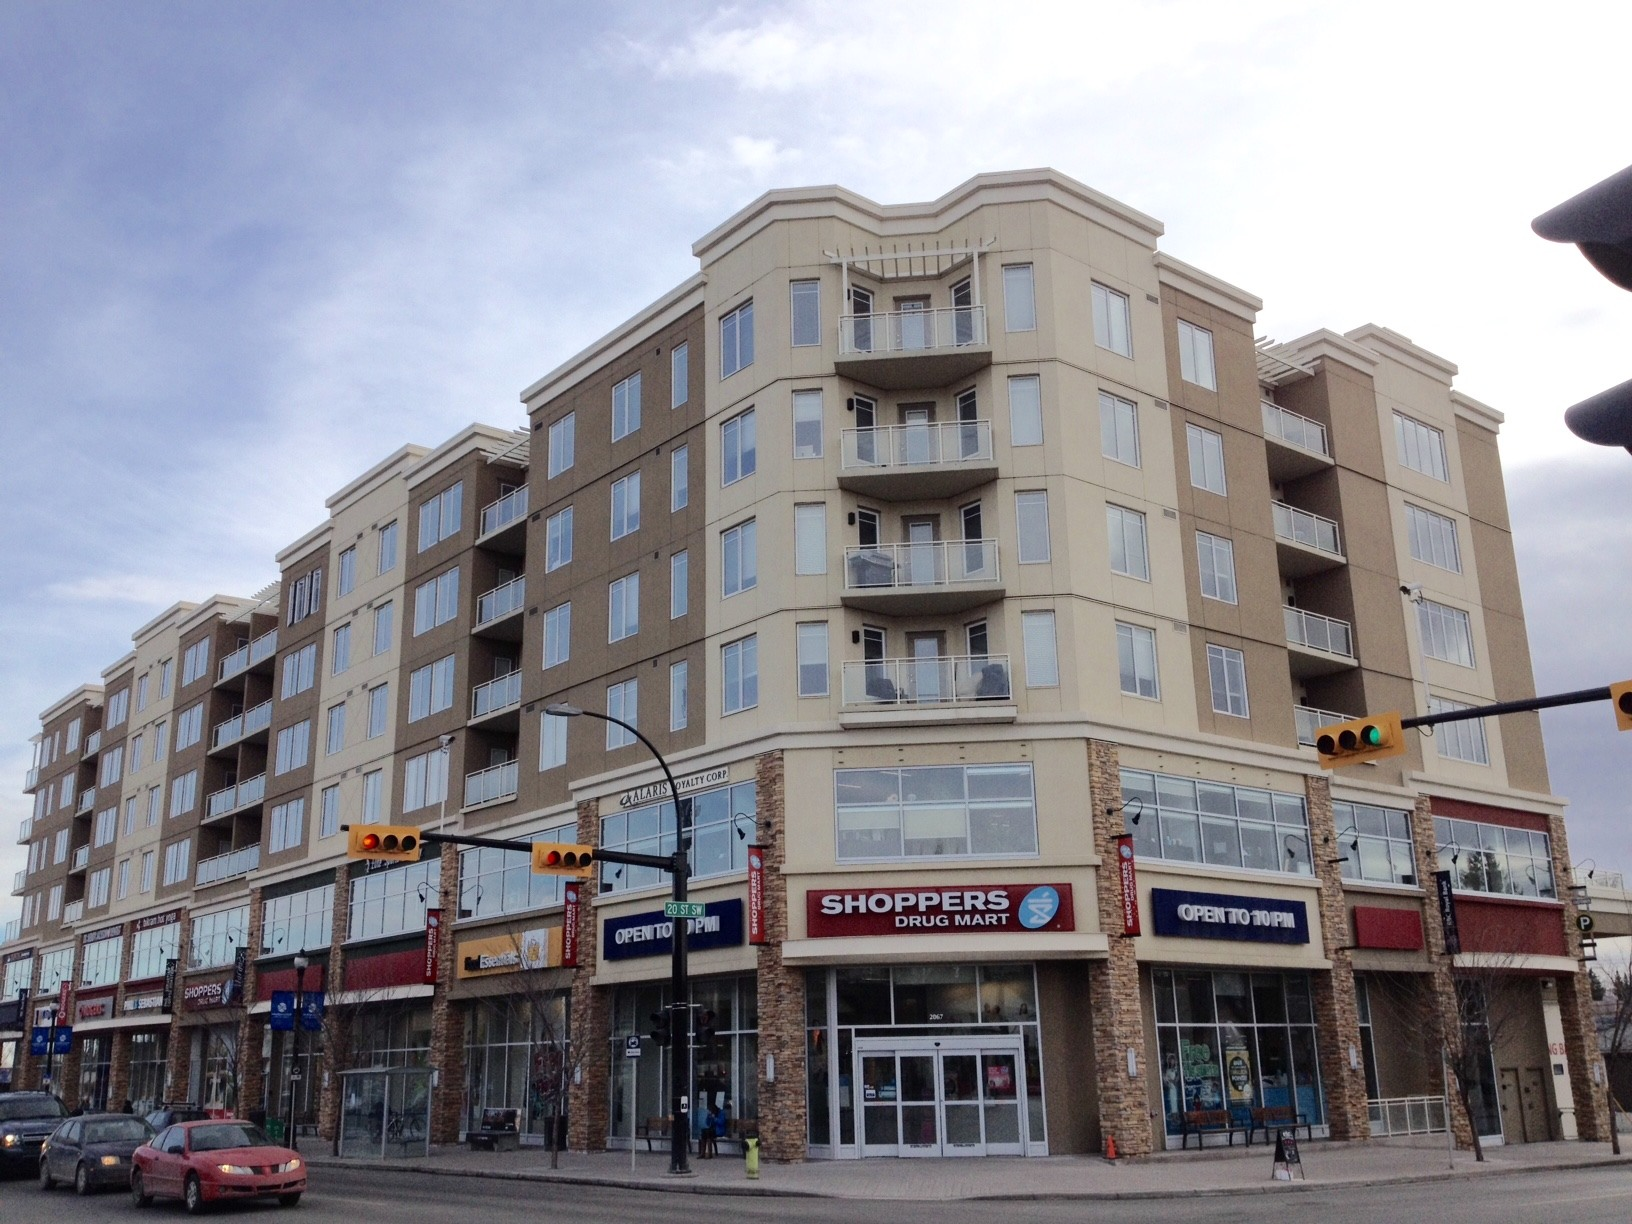 Marda Loop is an example of a contemporary pedestrian streets with retail shops at street level and condos above.  They bring new residents  and  retailers to help revitalize the community with many of the shops open 7 days a week and into the evening.